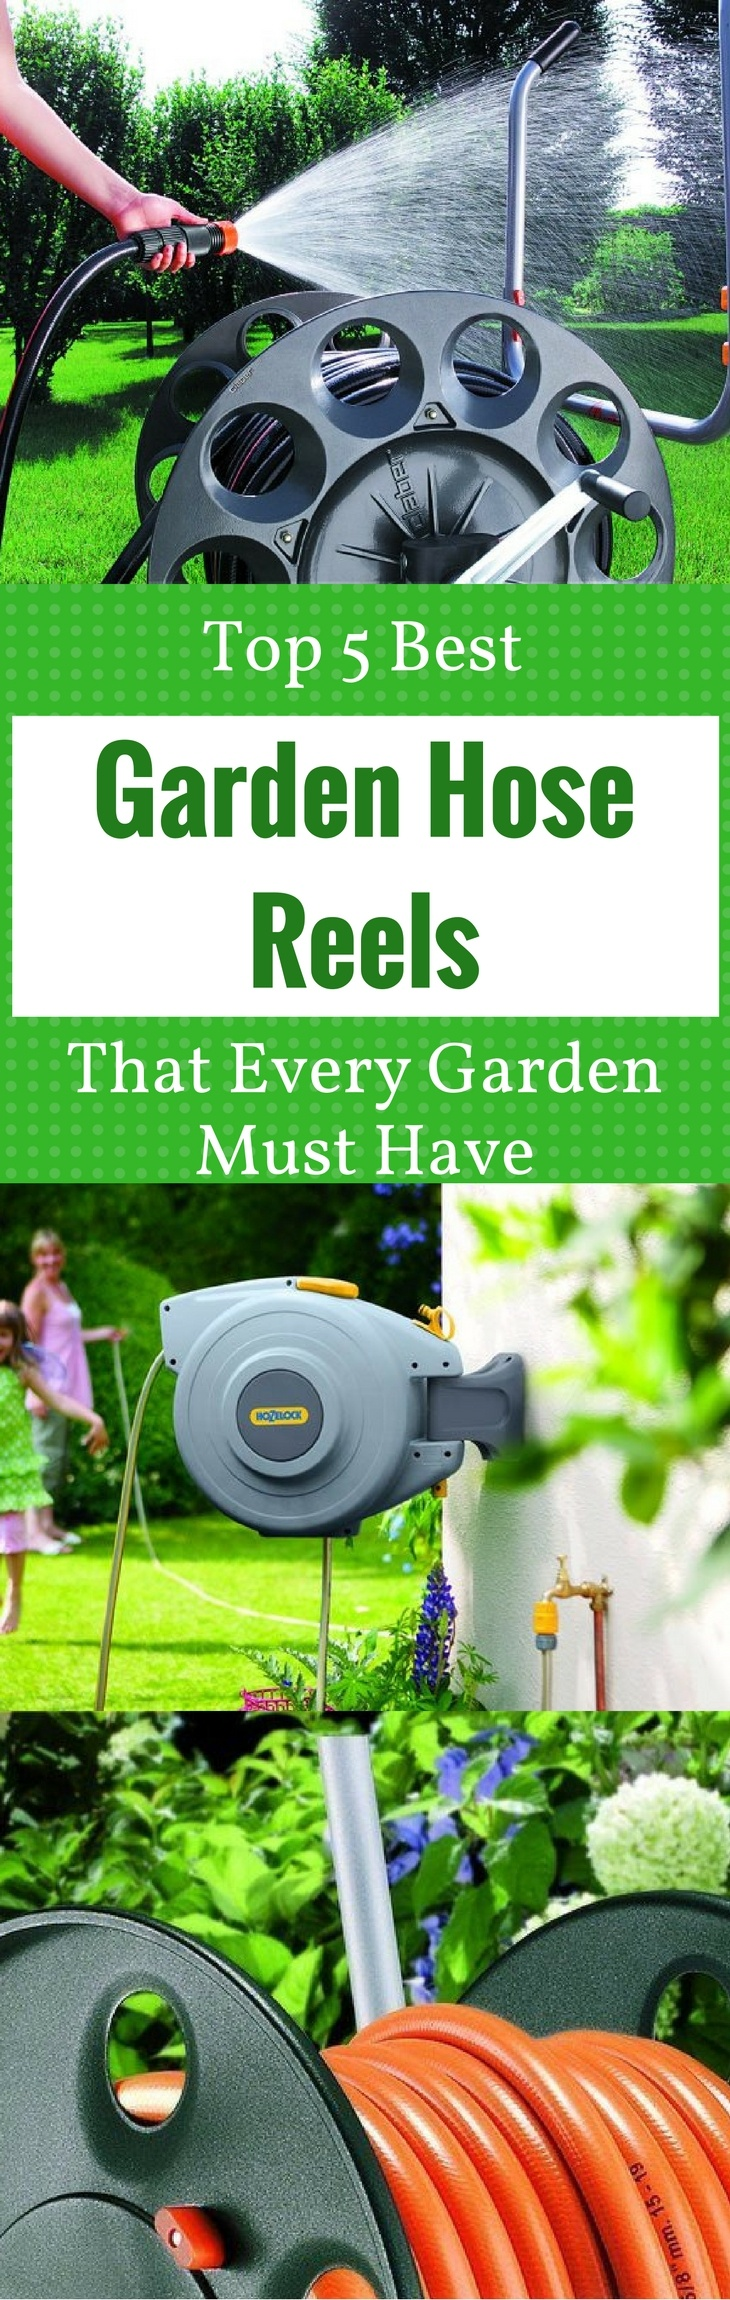 Top 5 Best - Garden Hose Reels - That Every Garden Must Have - best garden hose reels